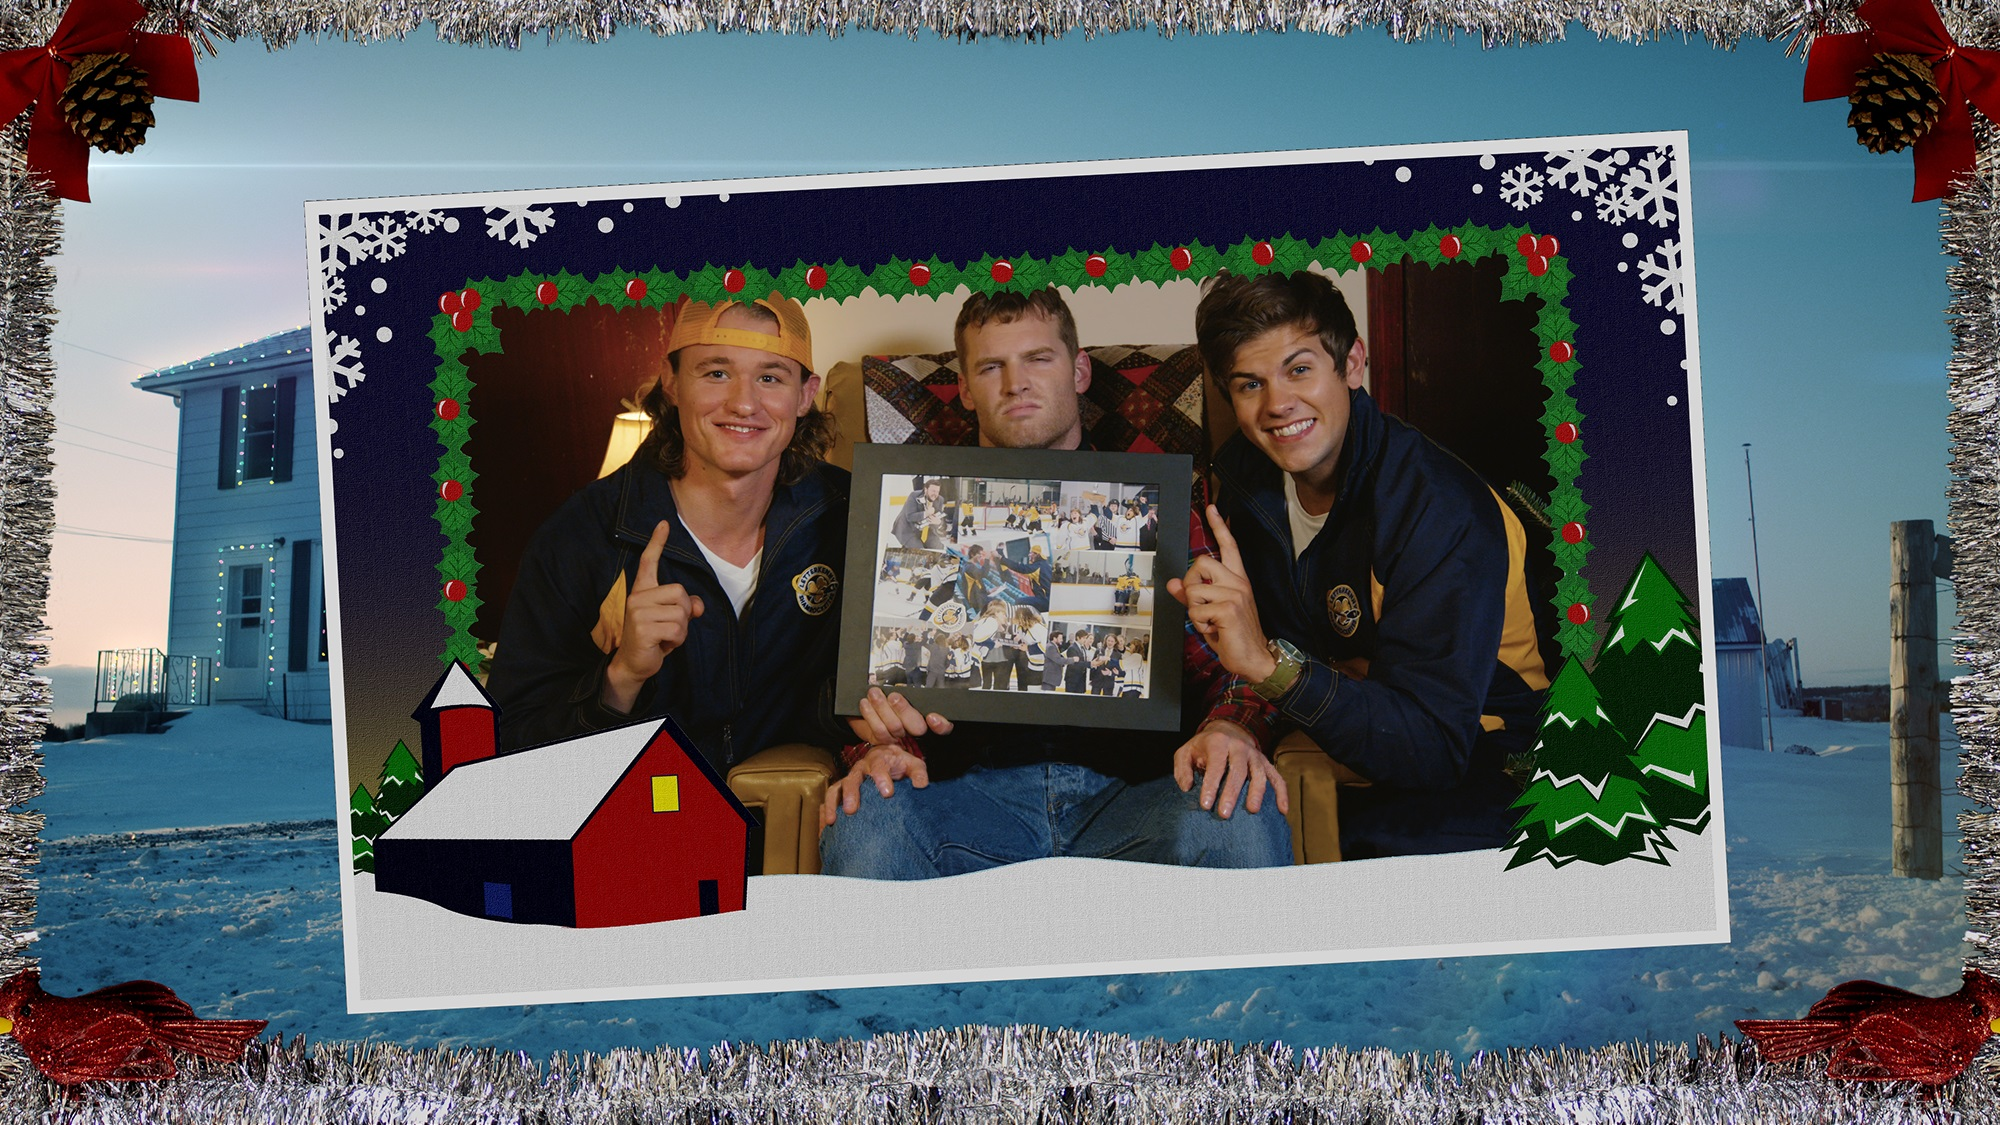 A Letterkenny Christmas: The Three Wise Men